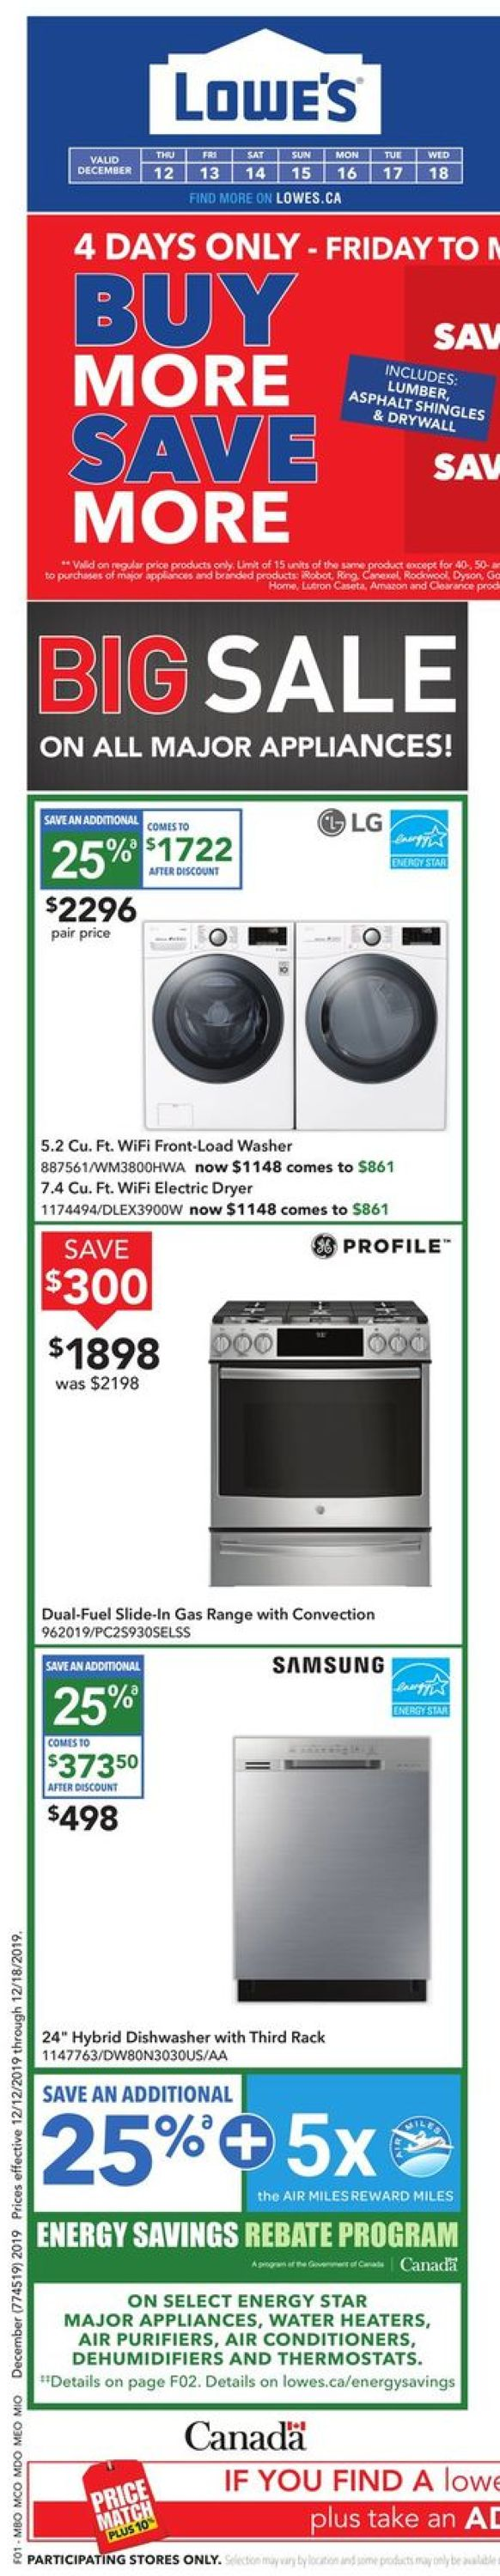 Lowes - Holidays 2019 Sale Flyer - 12/12-12/18/2019